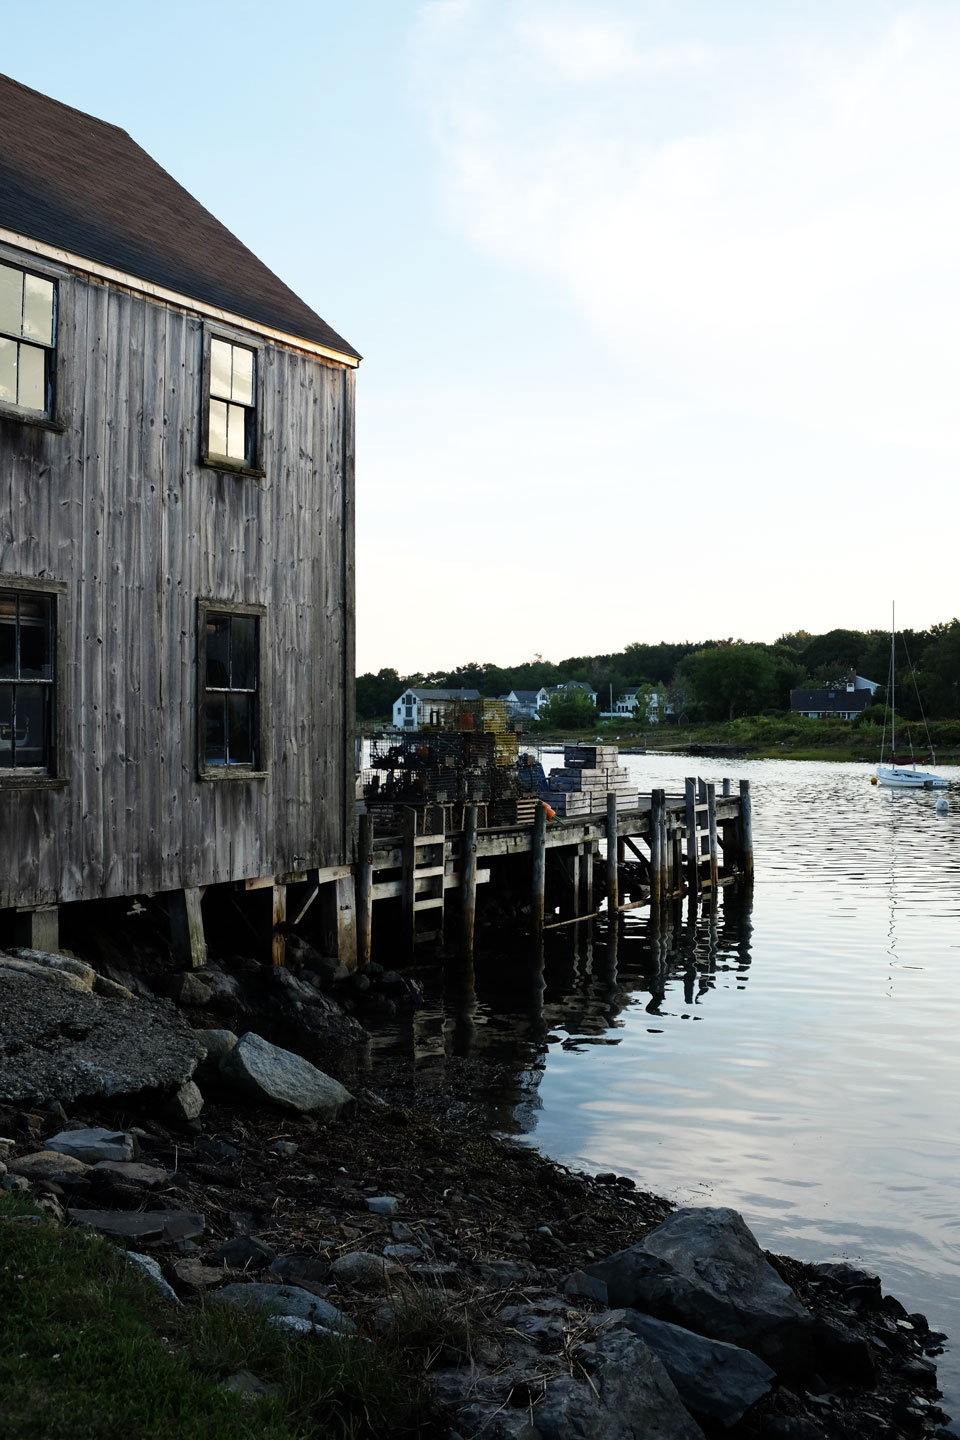 #TRAVEL : FROM MAINE WITH LOVE